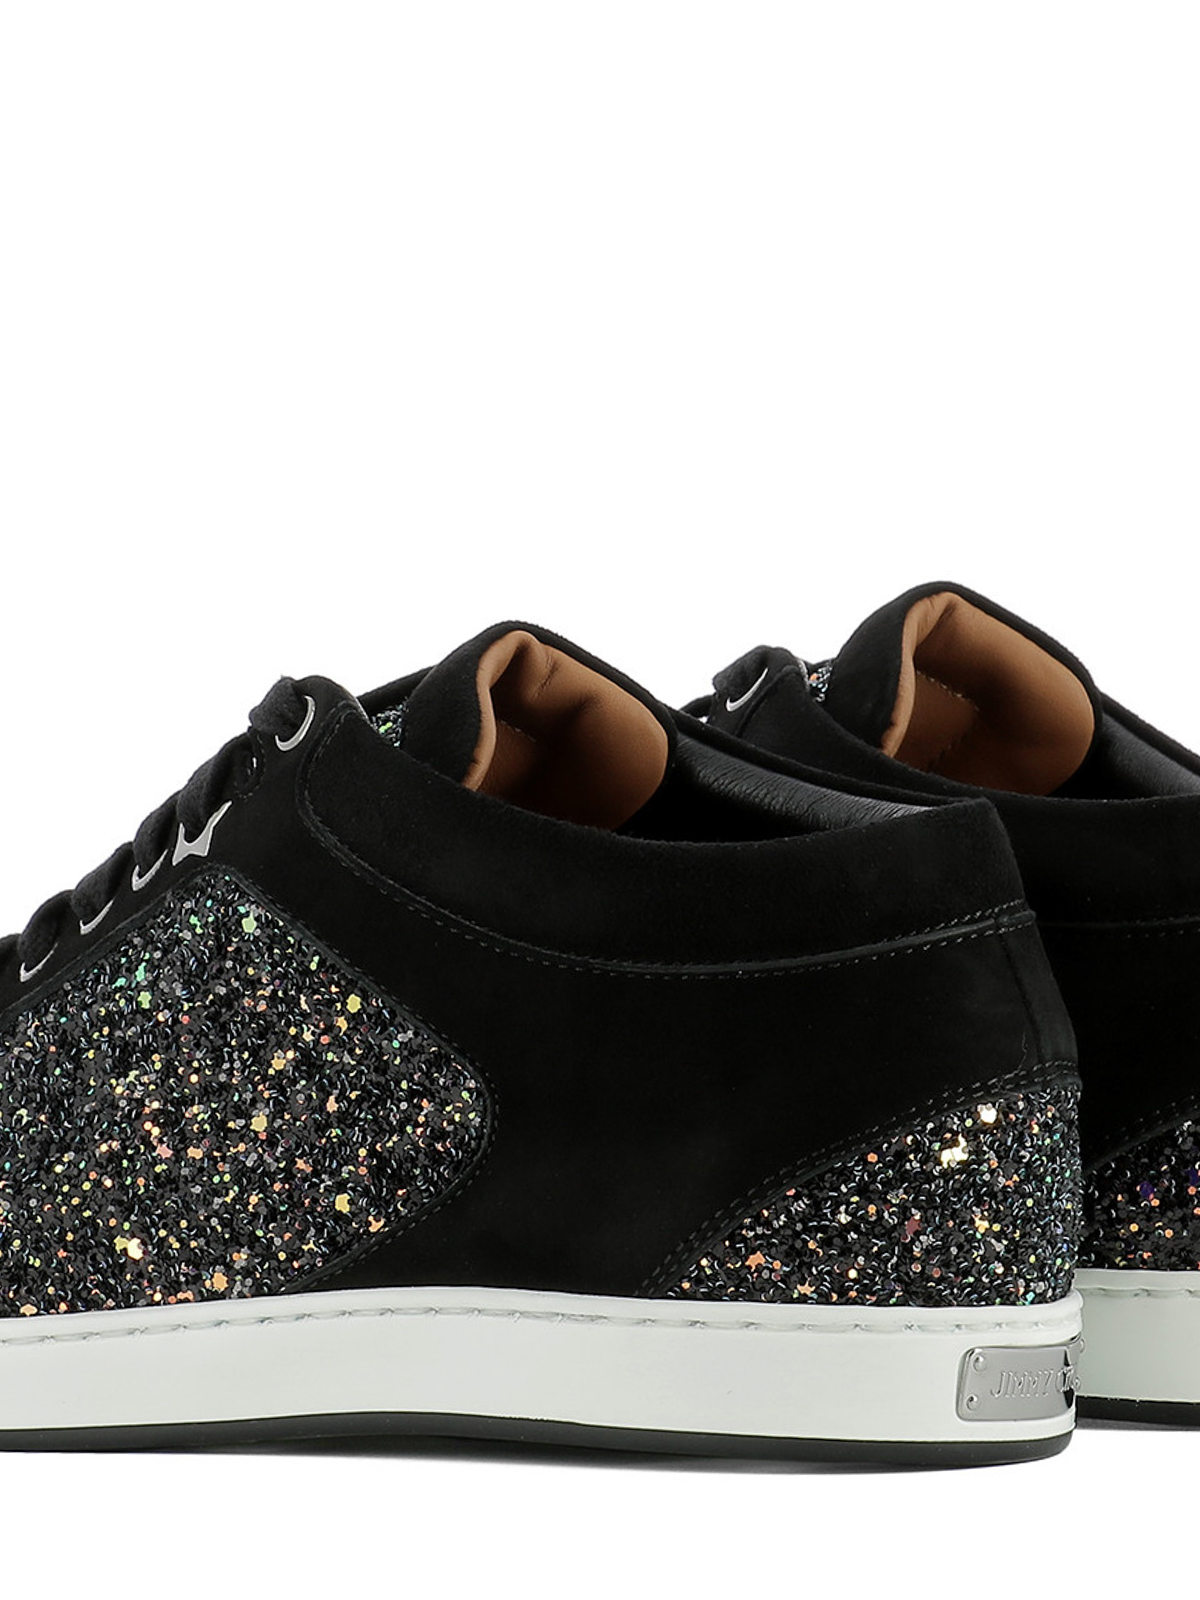 Jimmy Choo - Miami suede and glitter